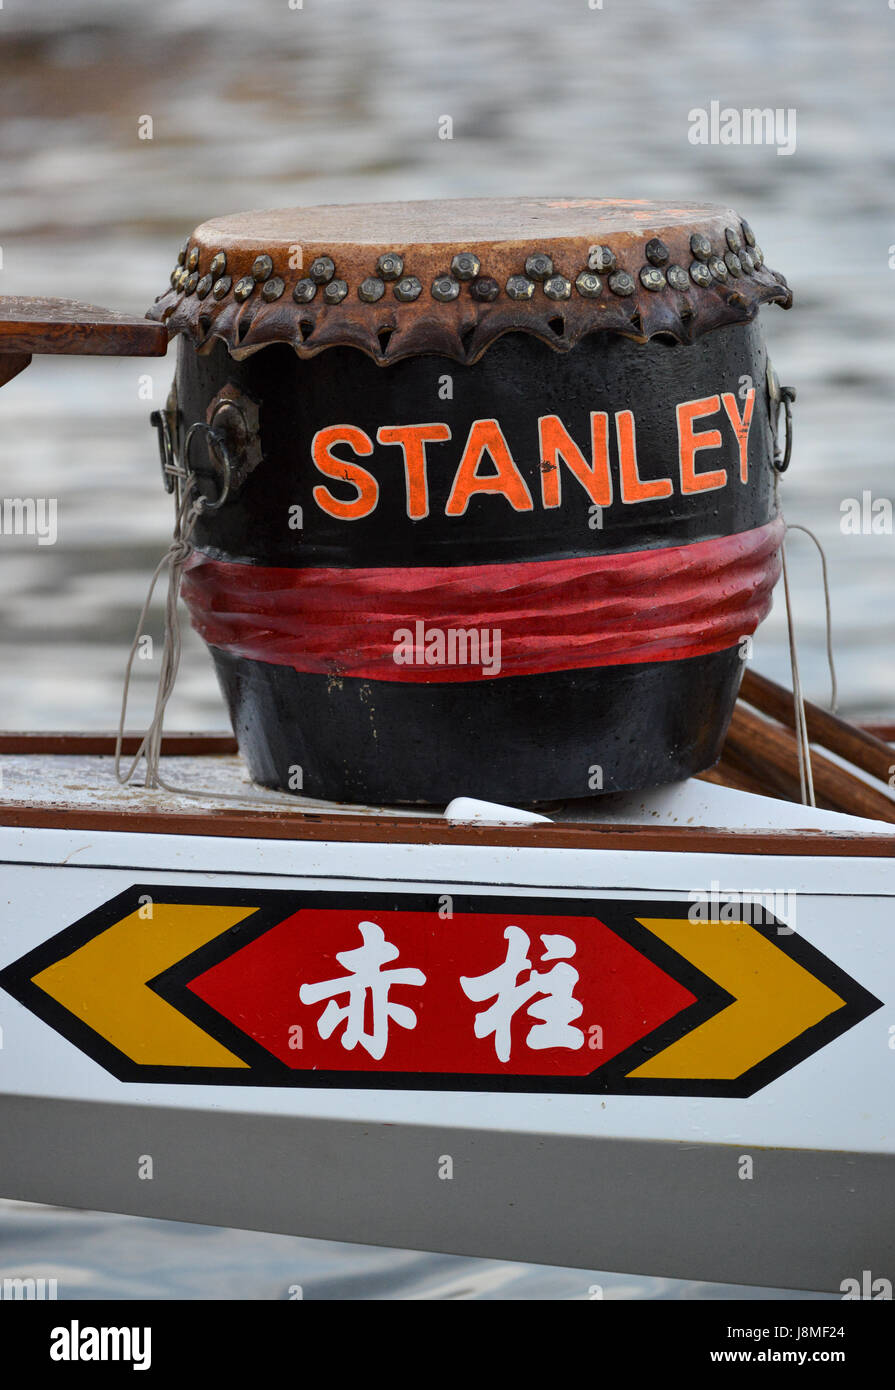 A drum used for time keeping sits aboard a dragon boats nnual International Dragon Boat races at Stanley Beach, - Stock Image